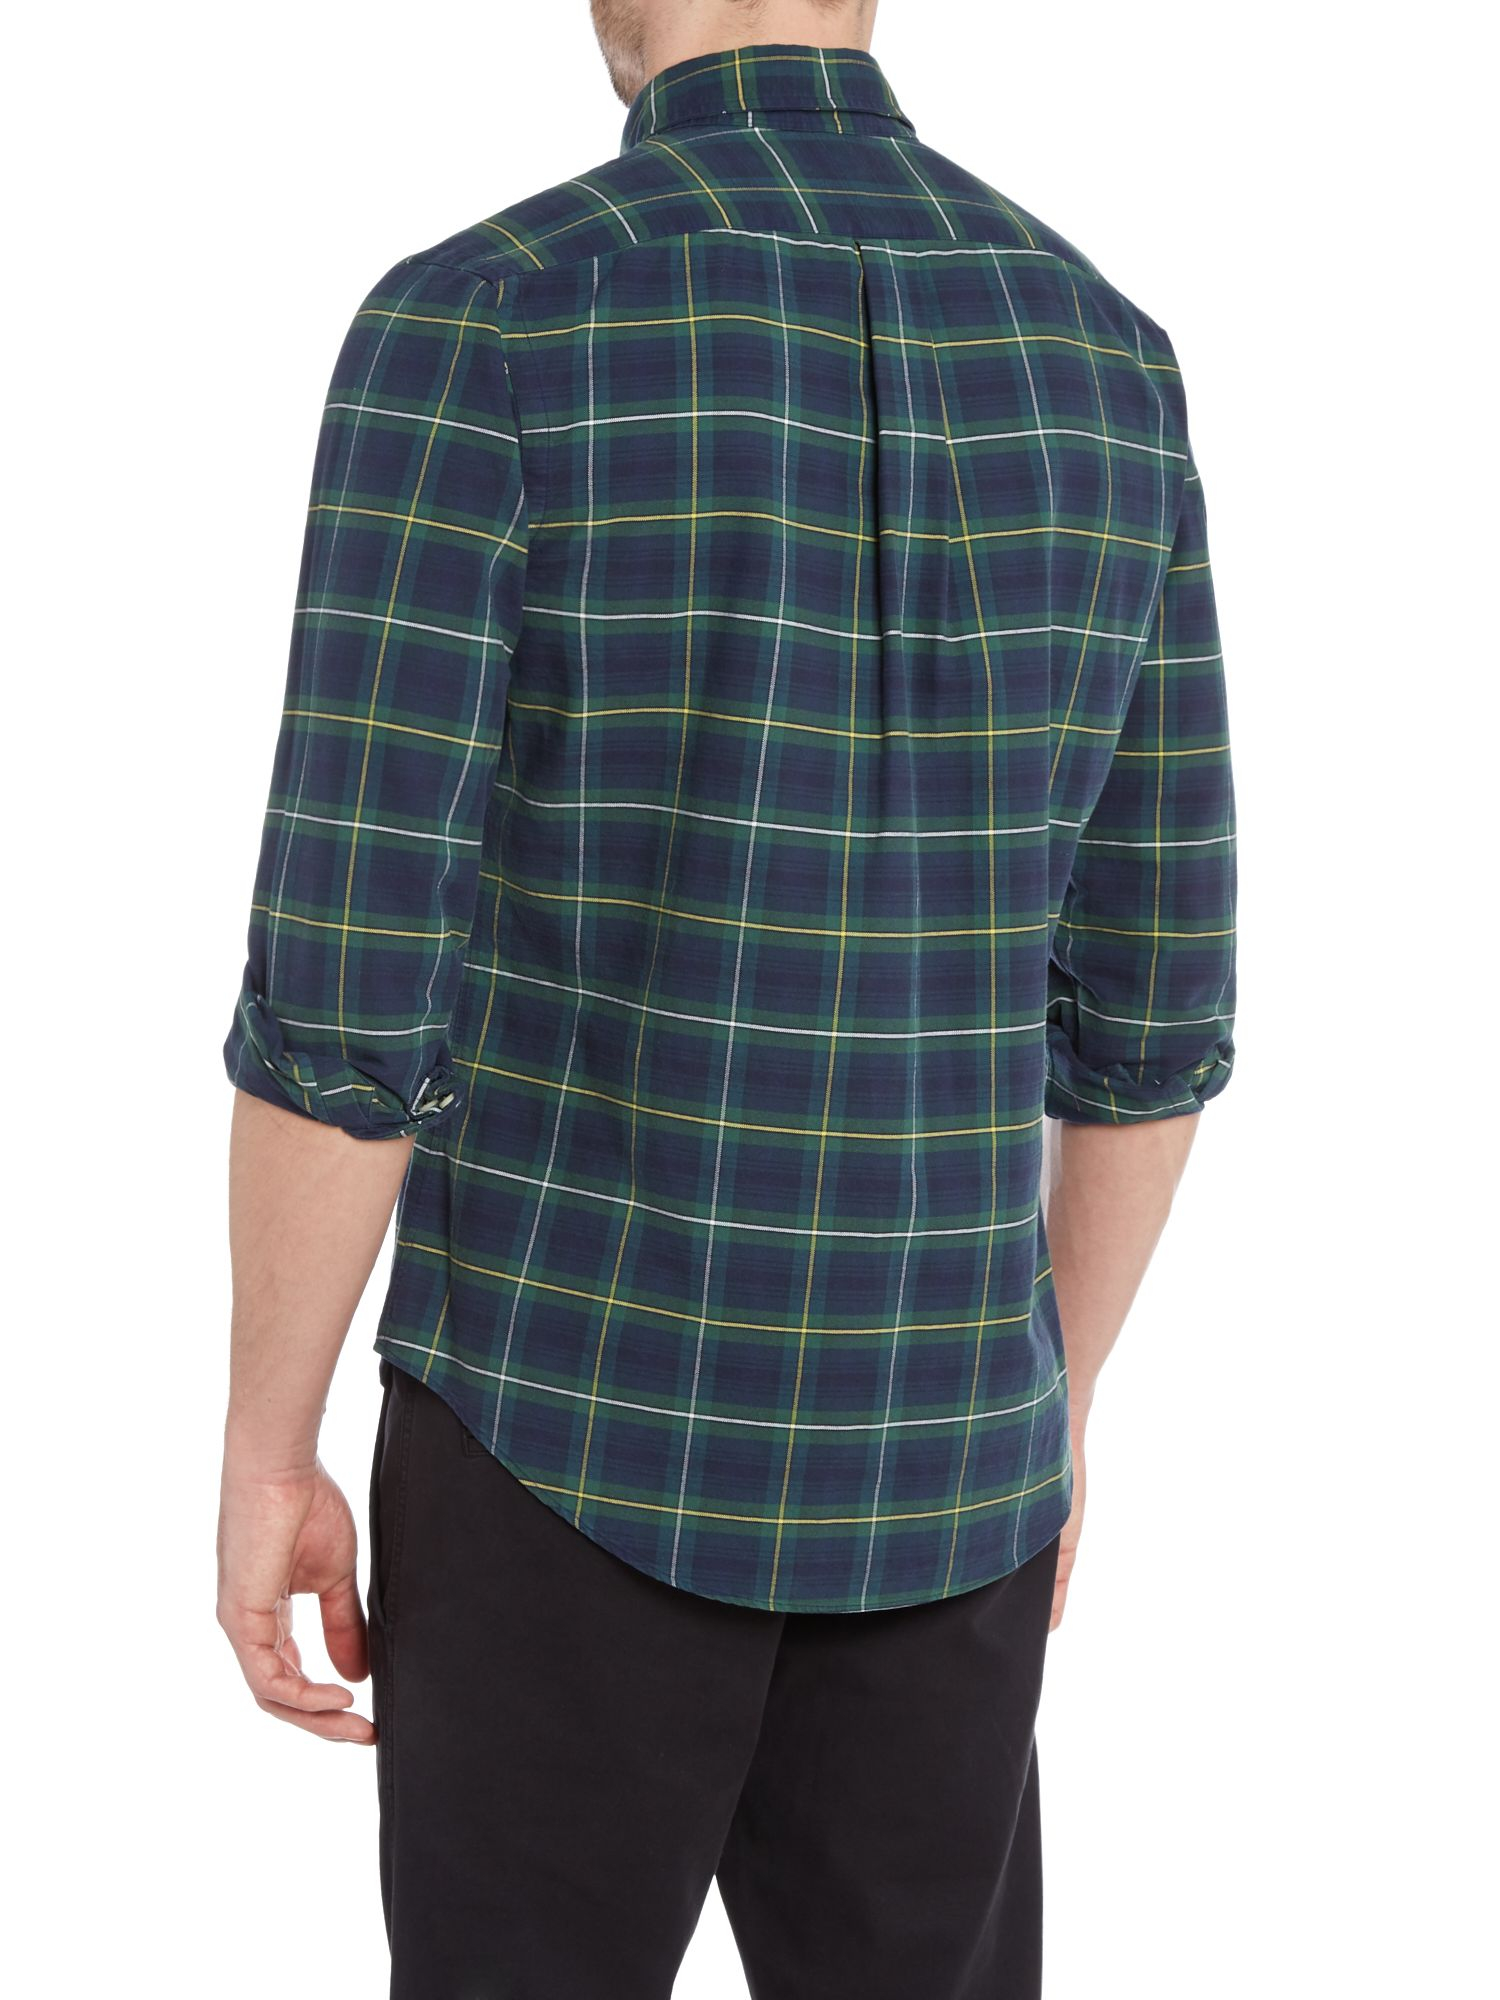 lyst polo ralph lauren long sleeve custom fit tartan check shirt in green for men. Black Bedroom Furniture Sets. Home Design Ideas